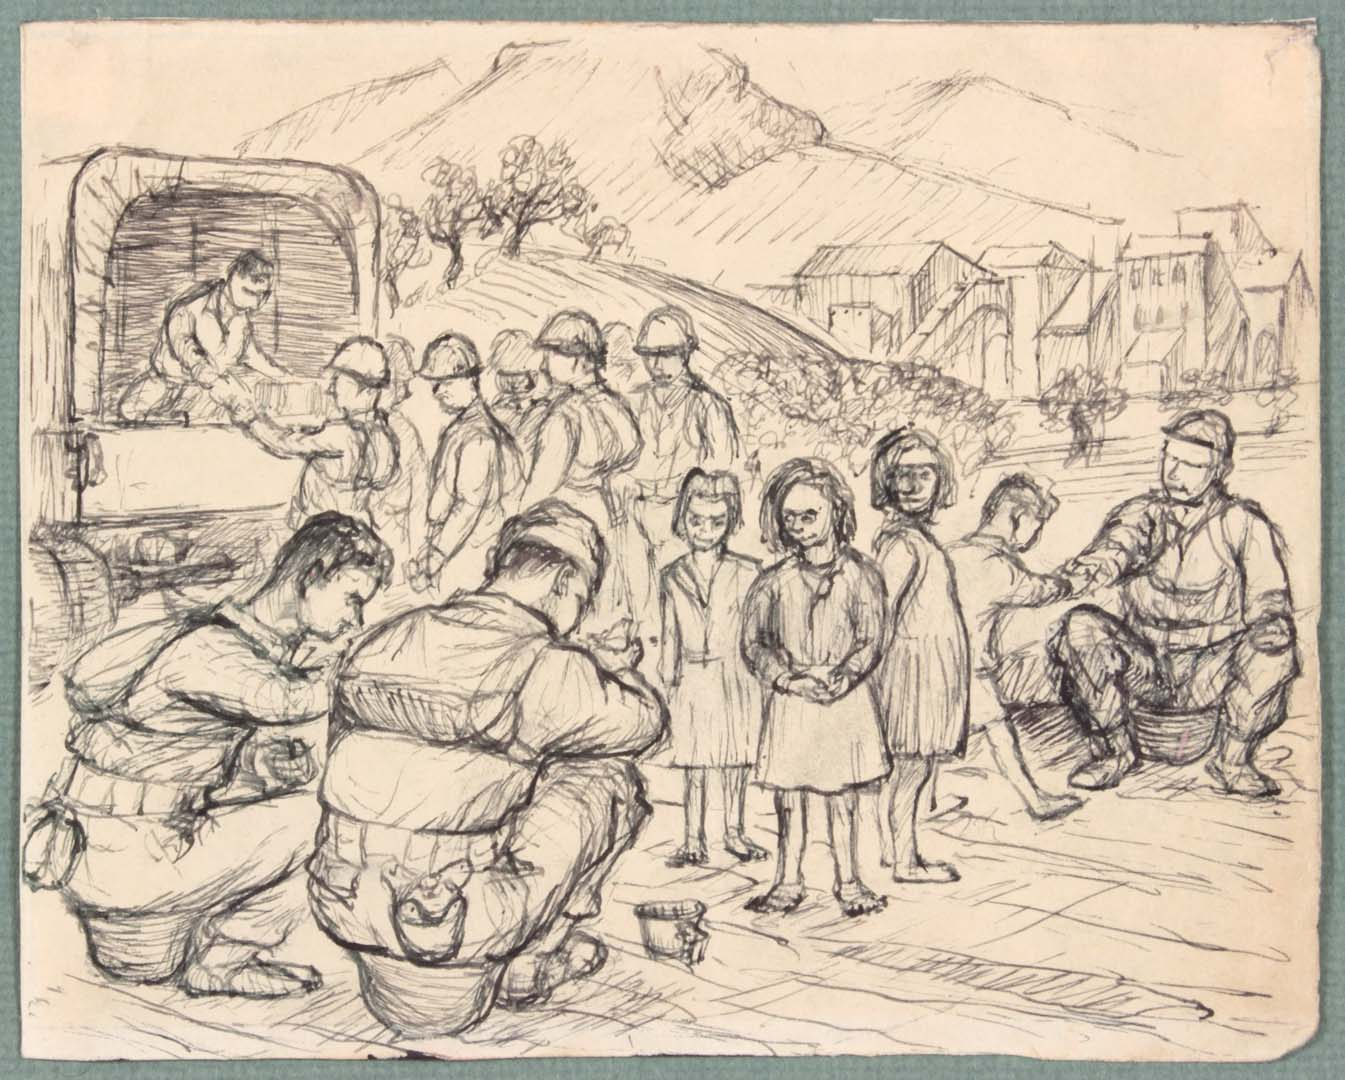 1943 NT (Sitting on Helmets) Pen and Ink on Paper 4.8125 x 6.0625